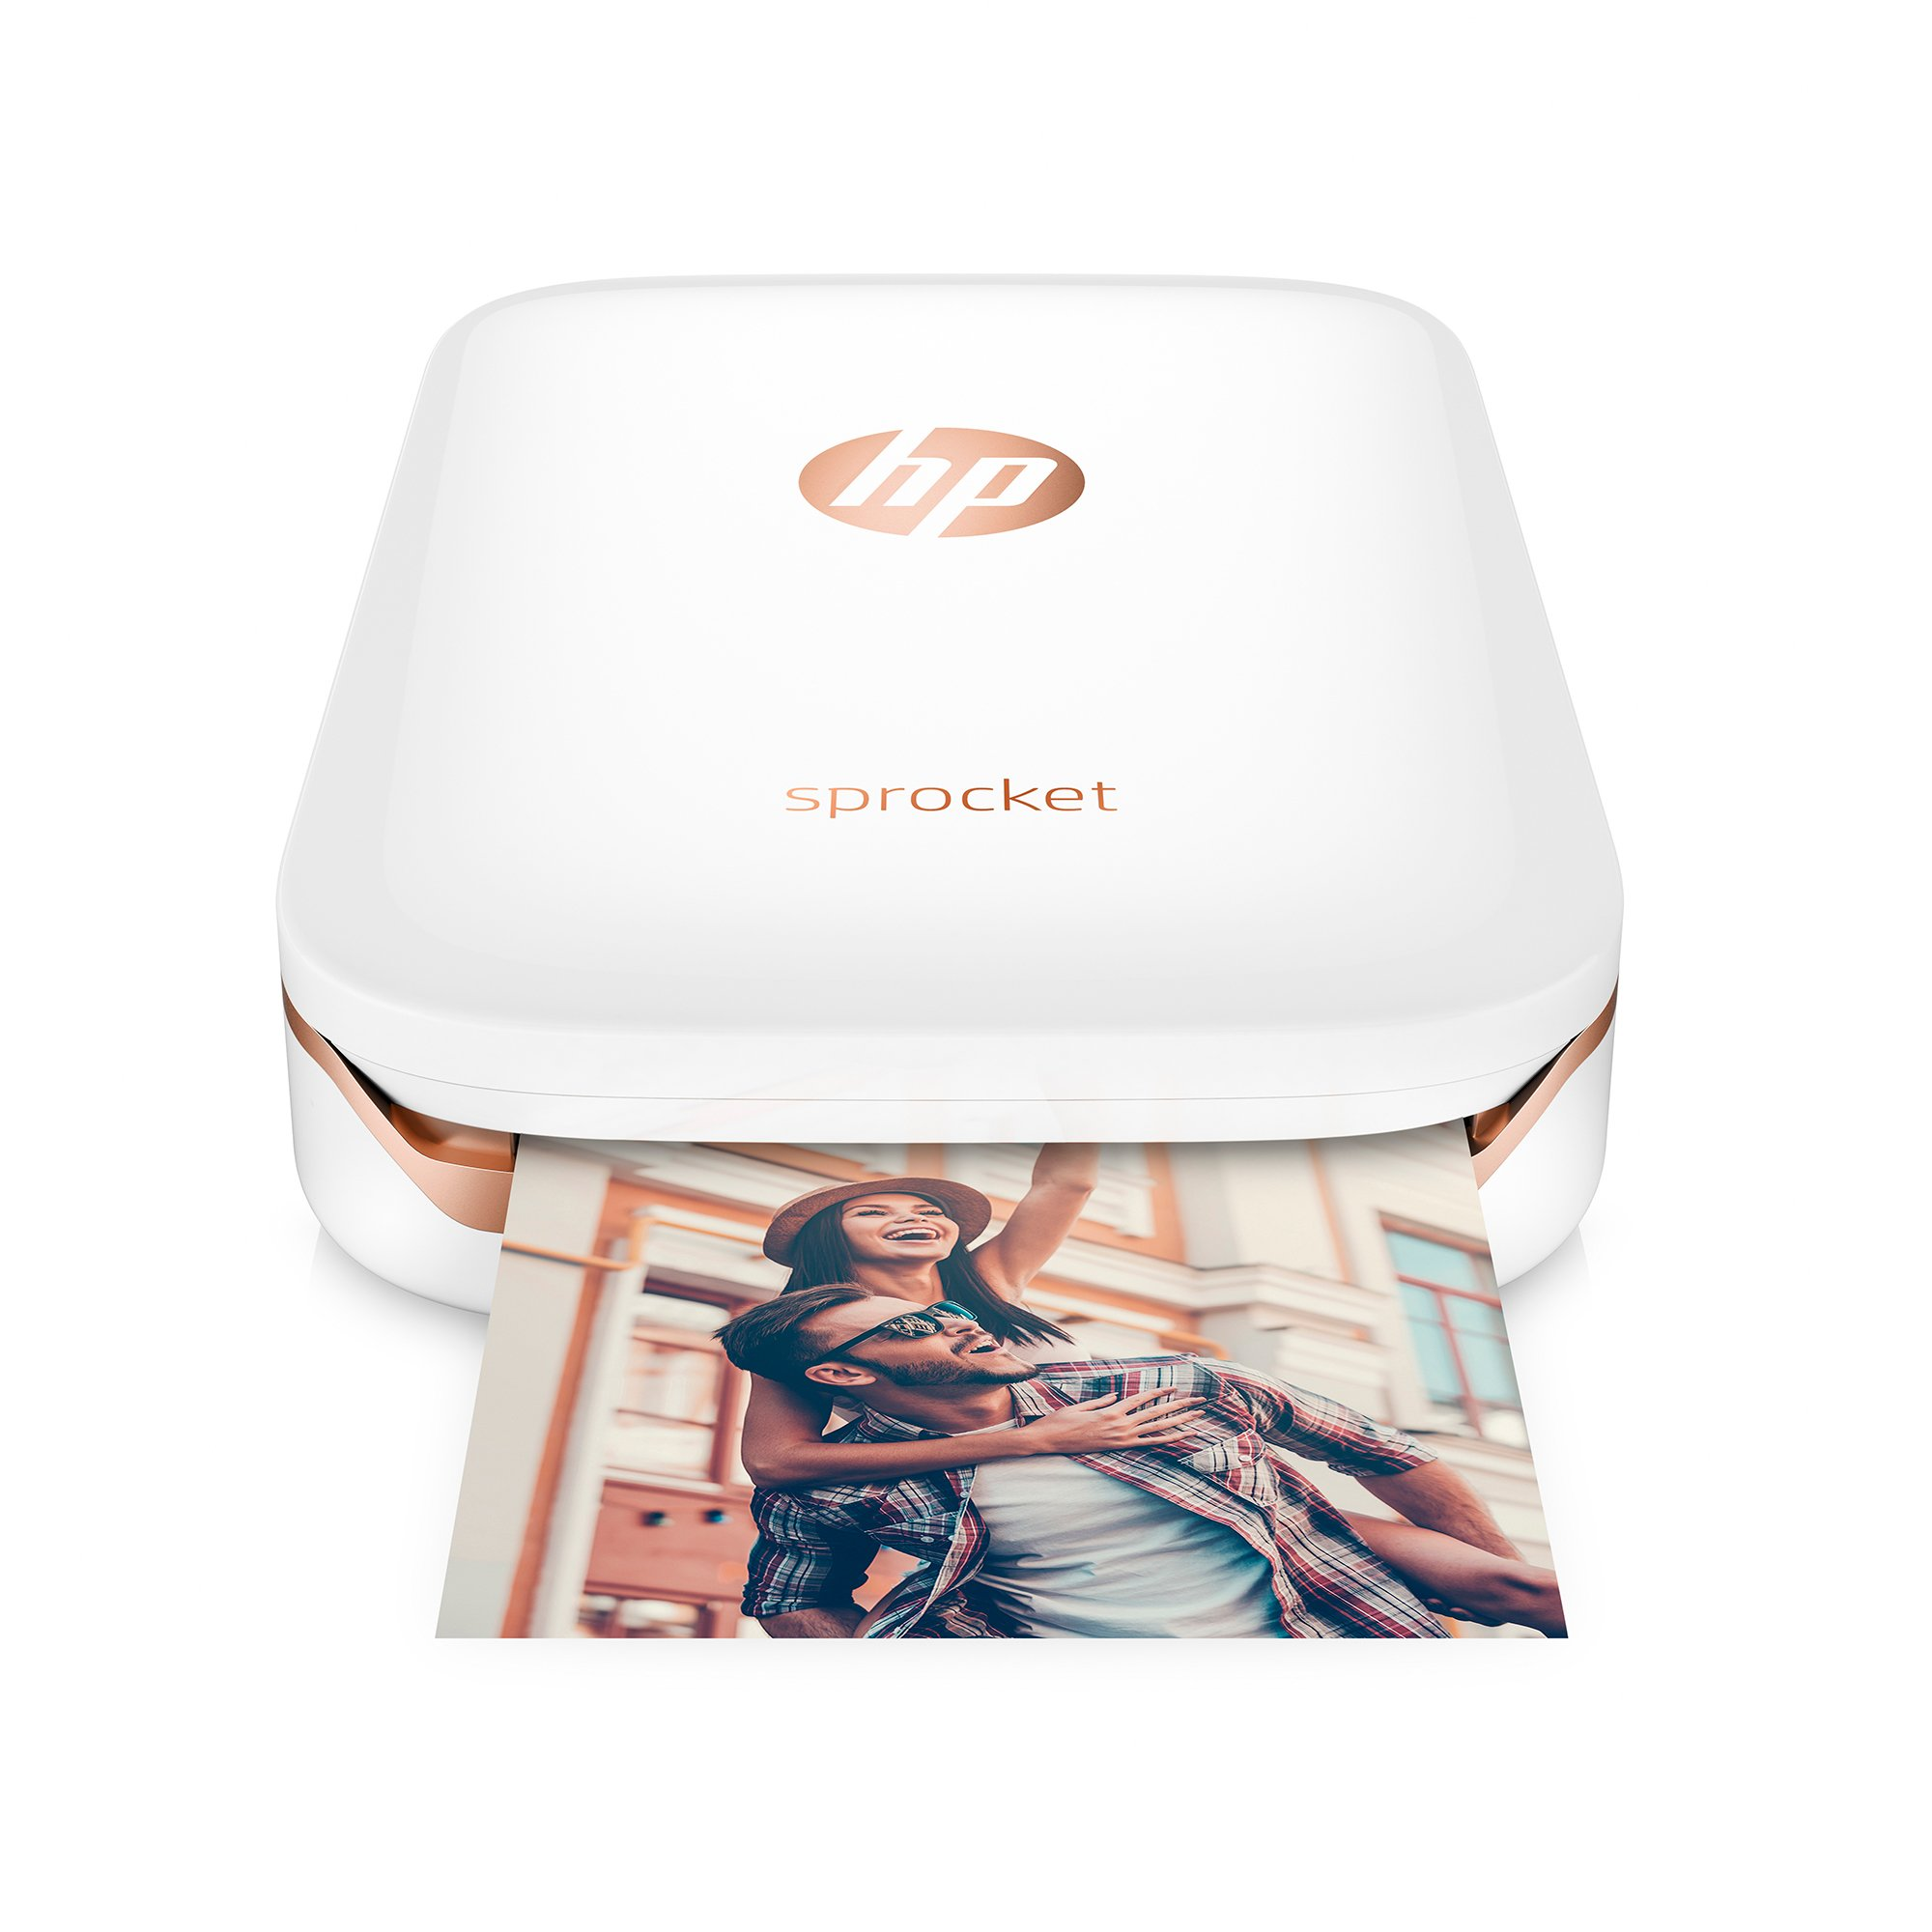 Portable Prints are fun gifts to give to your girlfriend